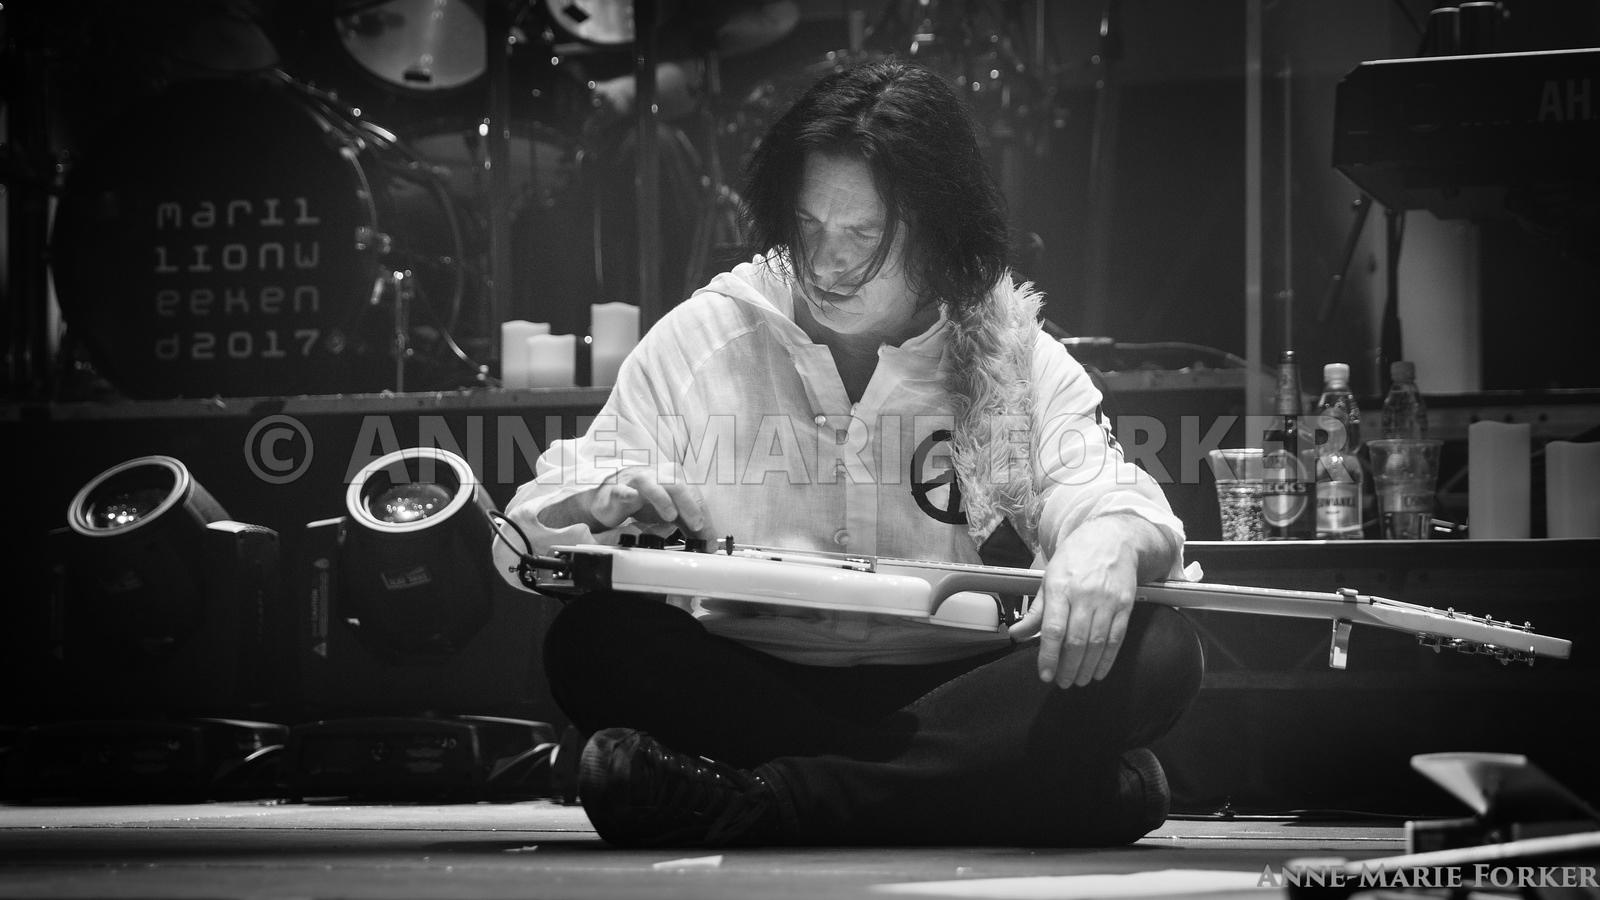 Marillion_Poland_FOR_PRINT_16_x_9_AM_Forker-9131